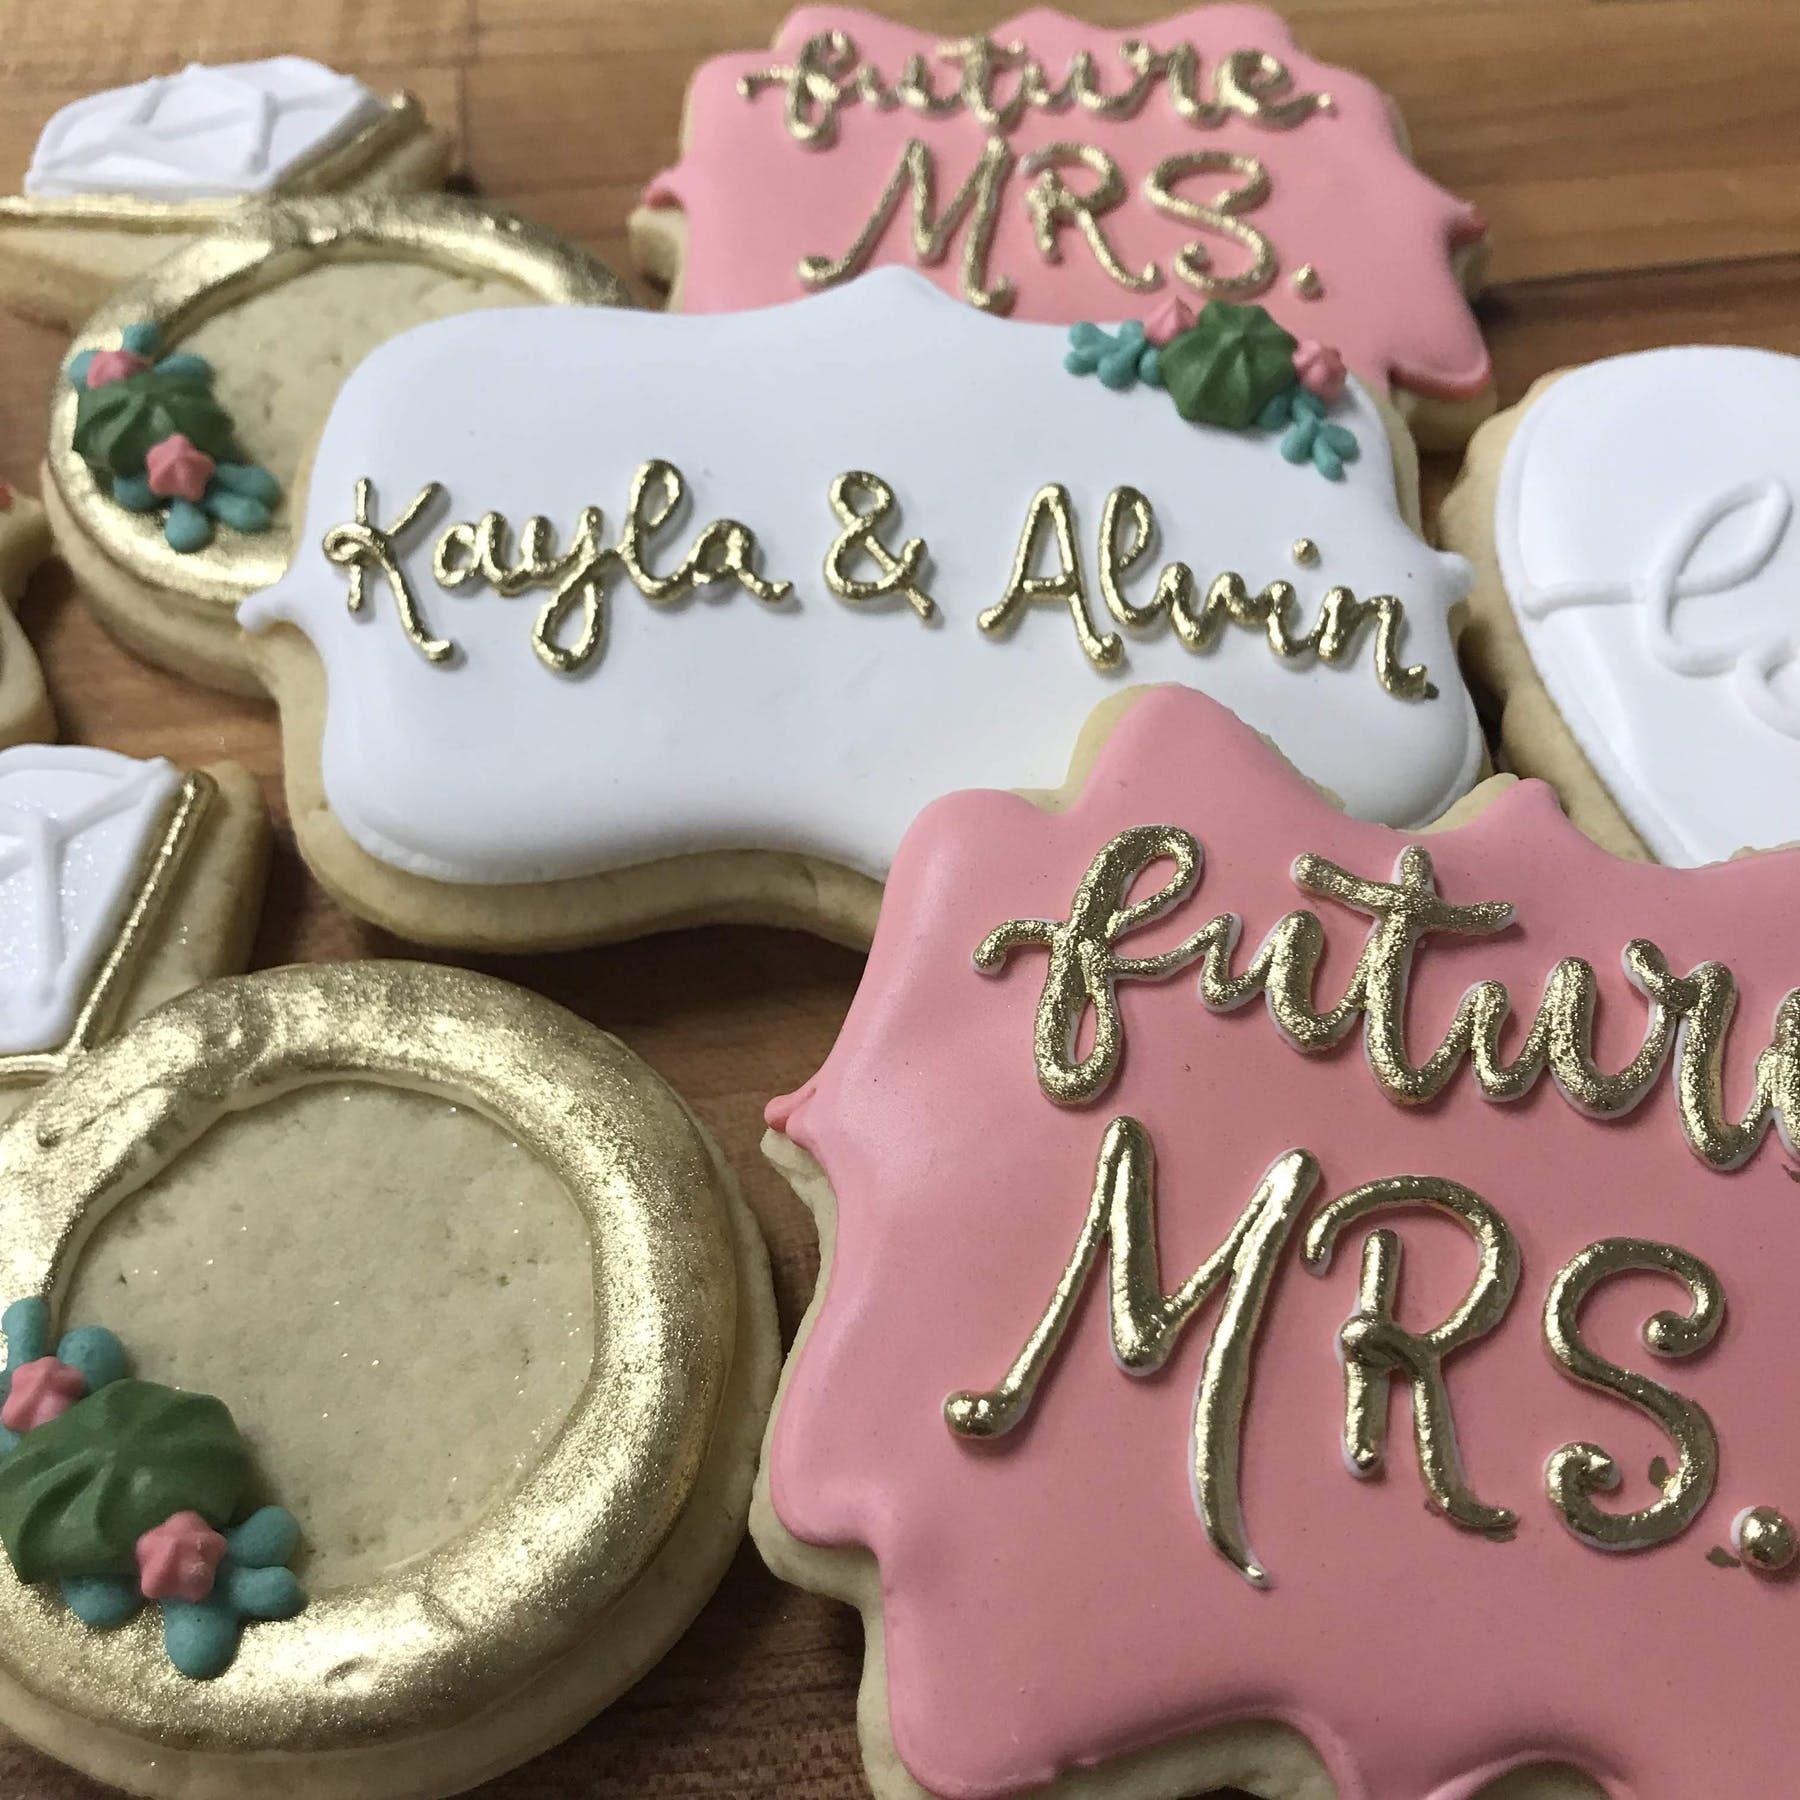 multiple decorated cookies sitting on a table